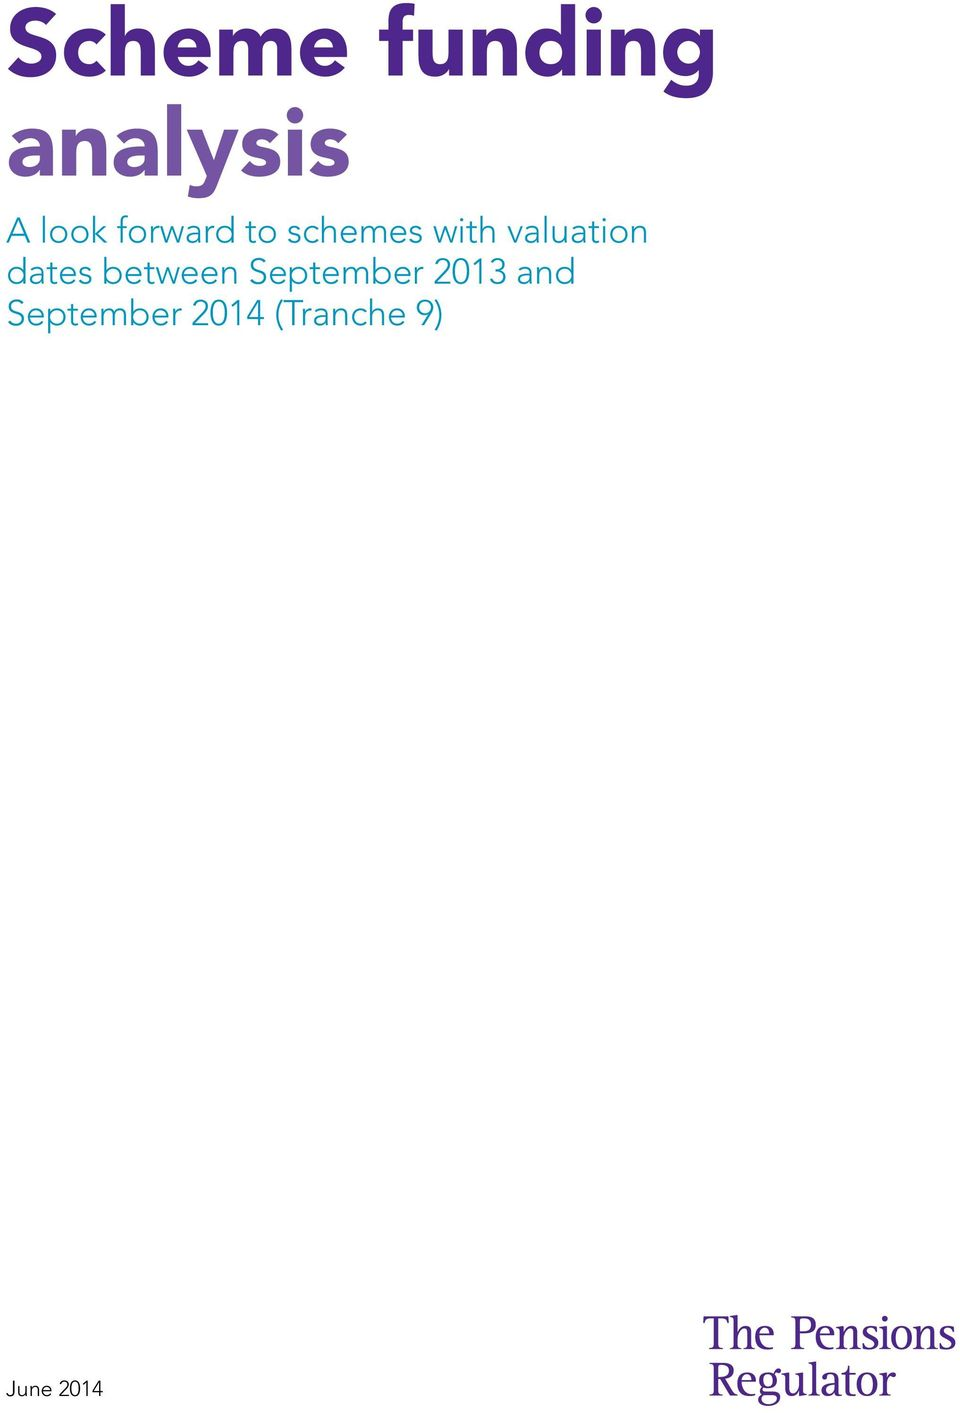 dates between September 2013 and